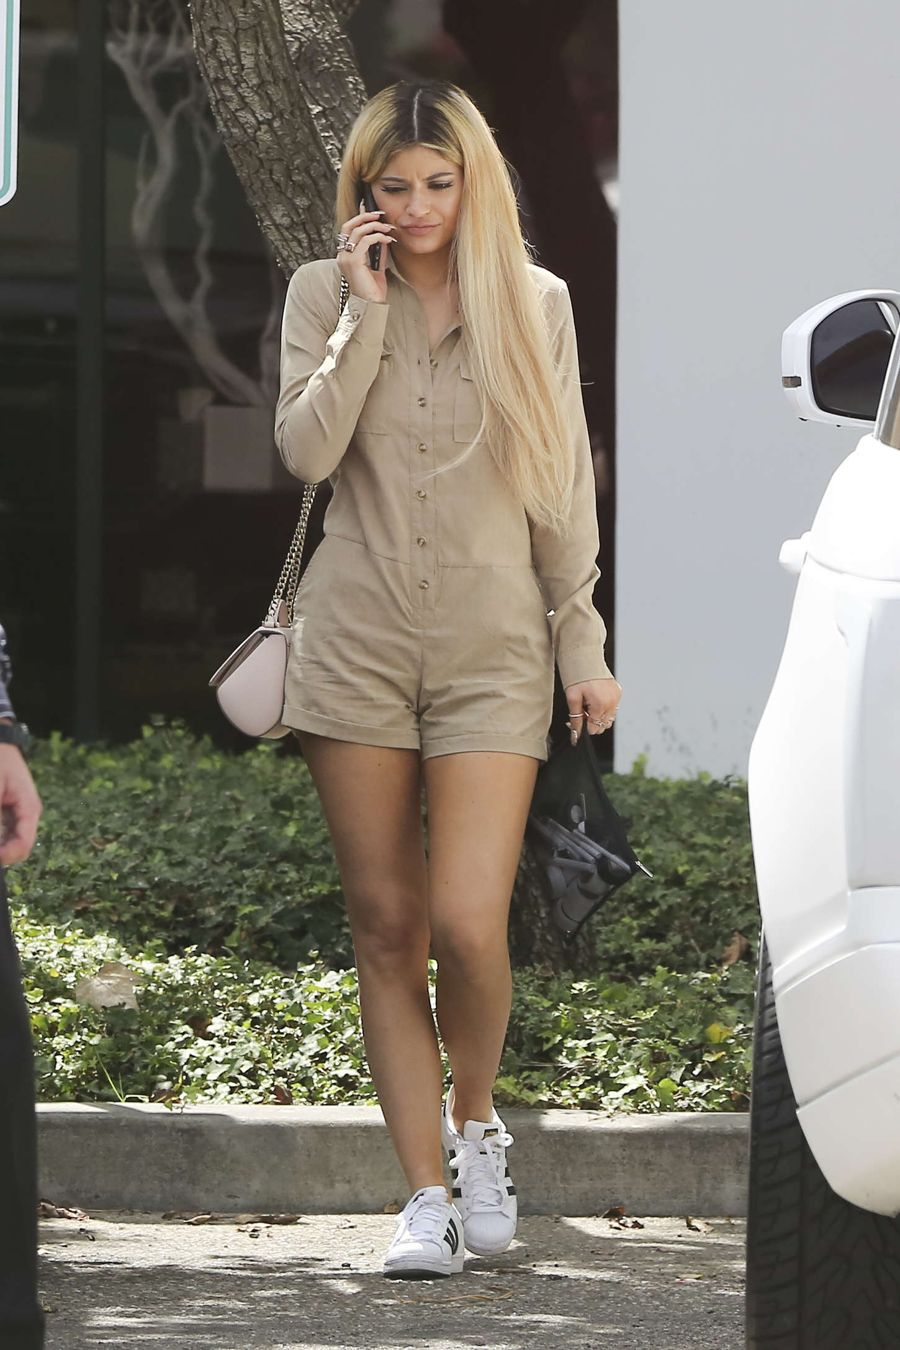 Kylie Jenner Steps Out as Blonde for the 1st Time